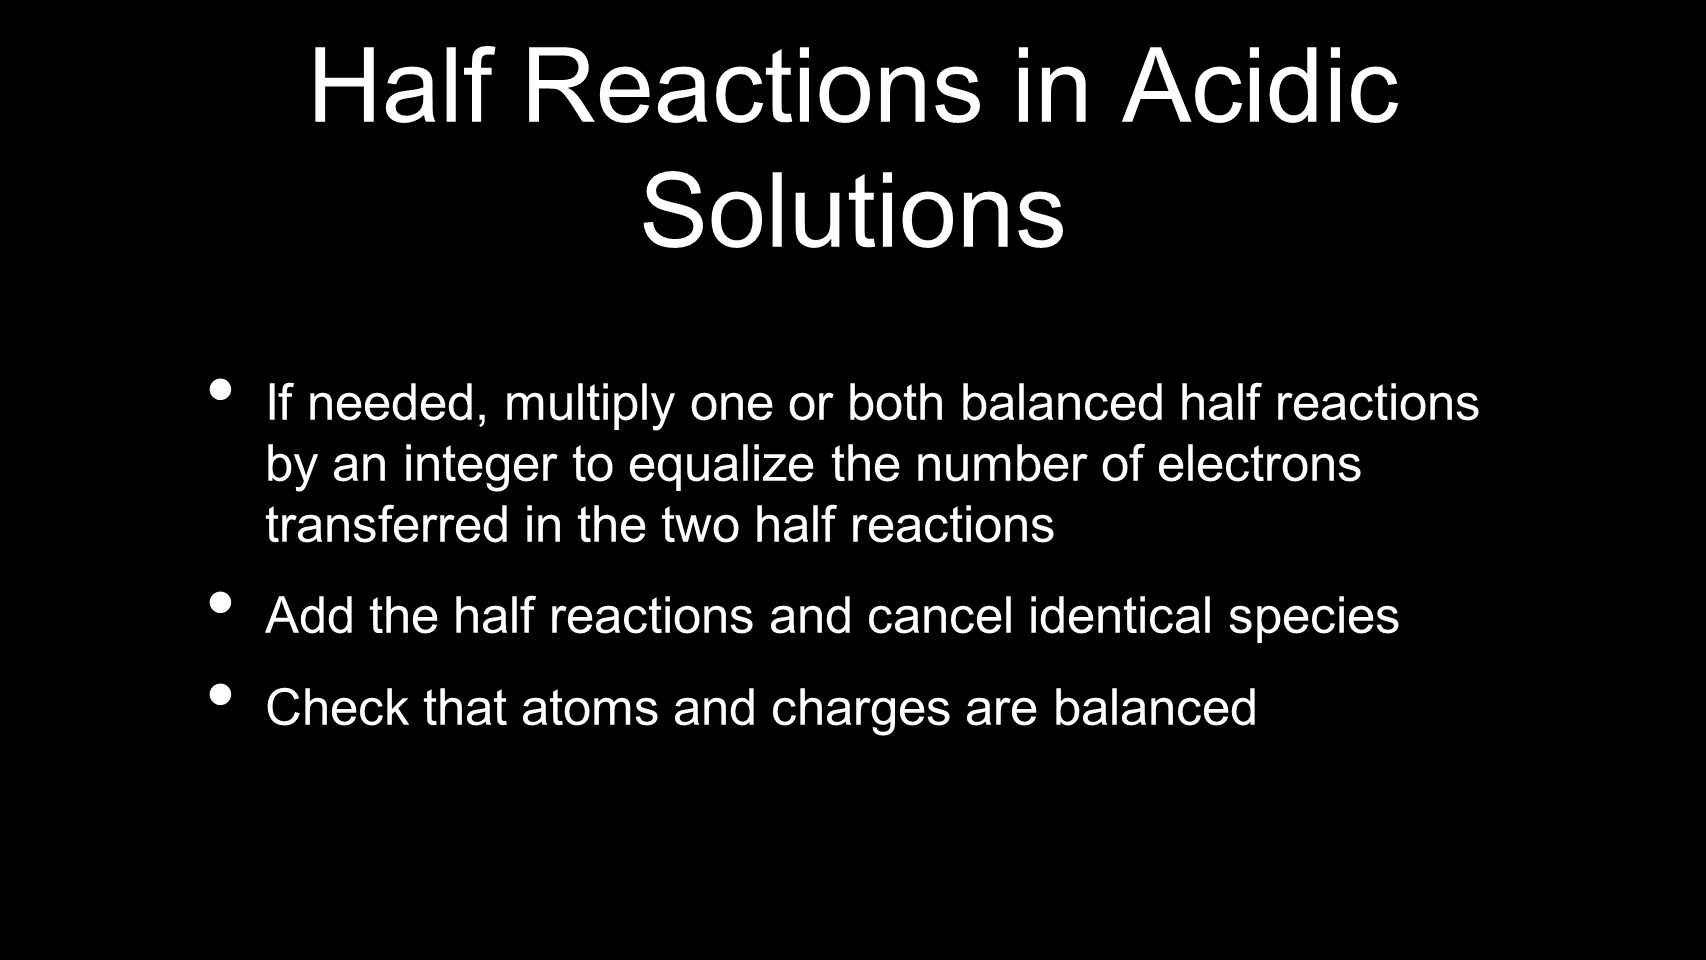 Half Reactions in Acidic Solutions If needed, multiply one or both balanced half reactions by an integer to equalize the number of electrons transferr